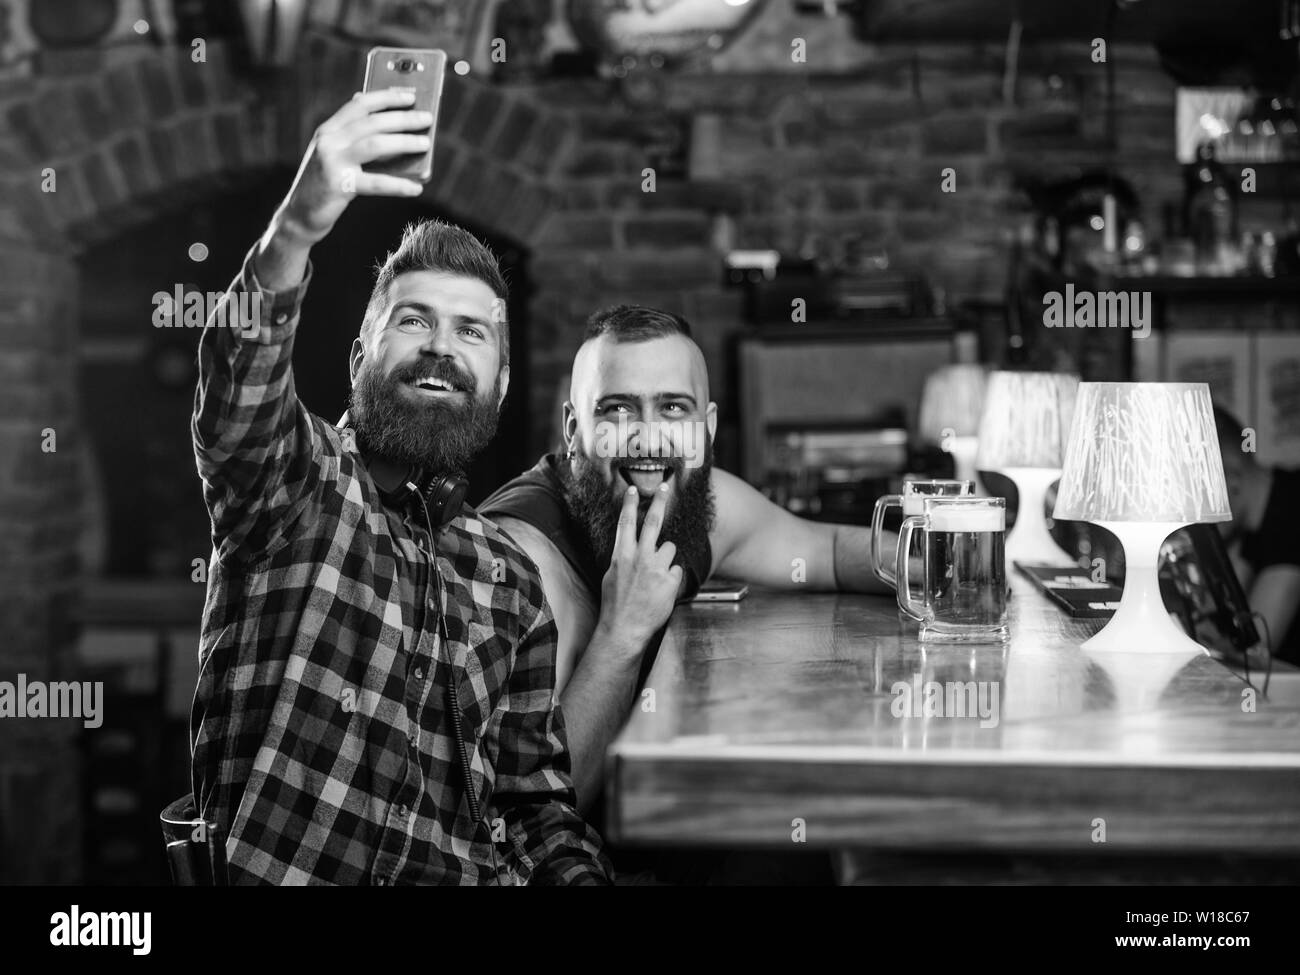 Send selfie to friends social networks. Man in bar drinking beer. Take selfie photo to remember great evening in pub. Online communication. Man bearded hipster hold smartphone. Taking selfie concept. - Stock Image